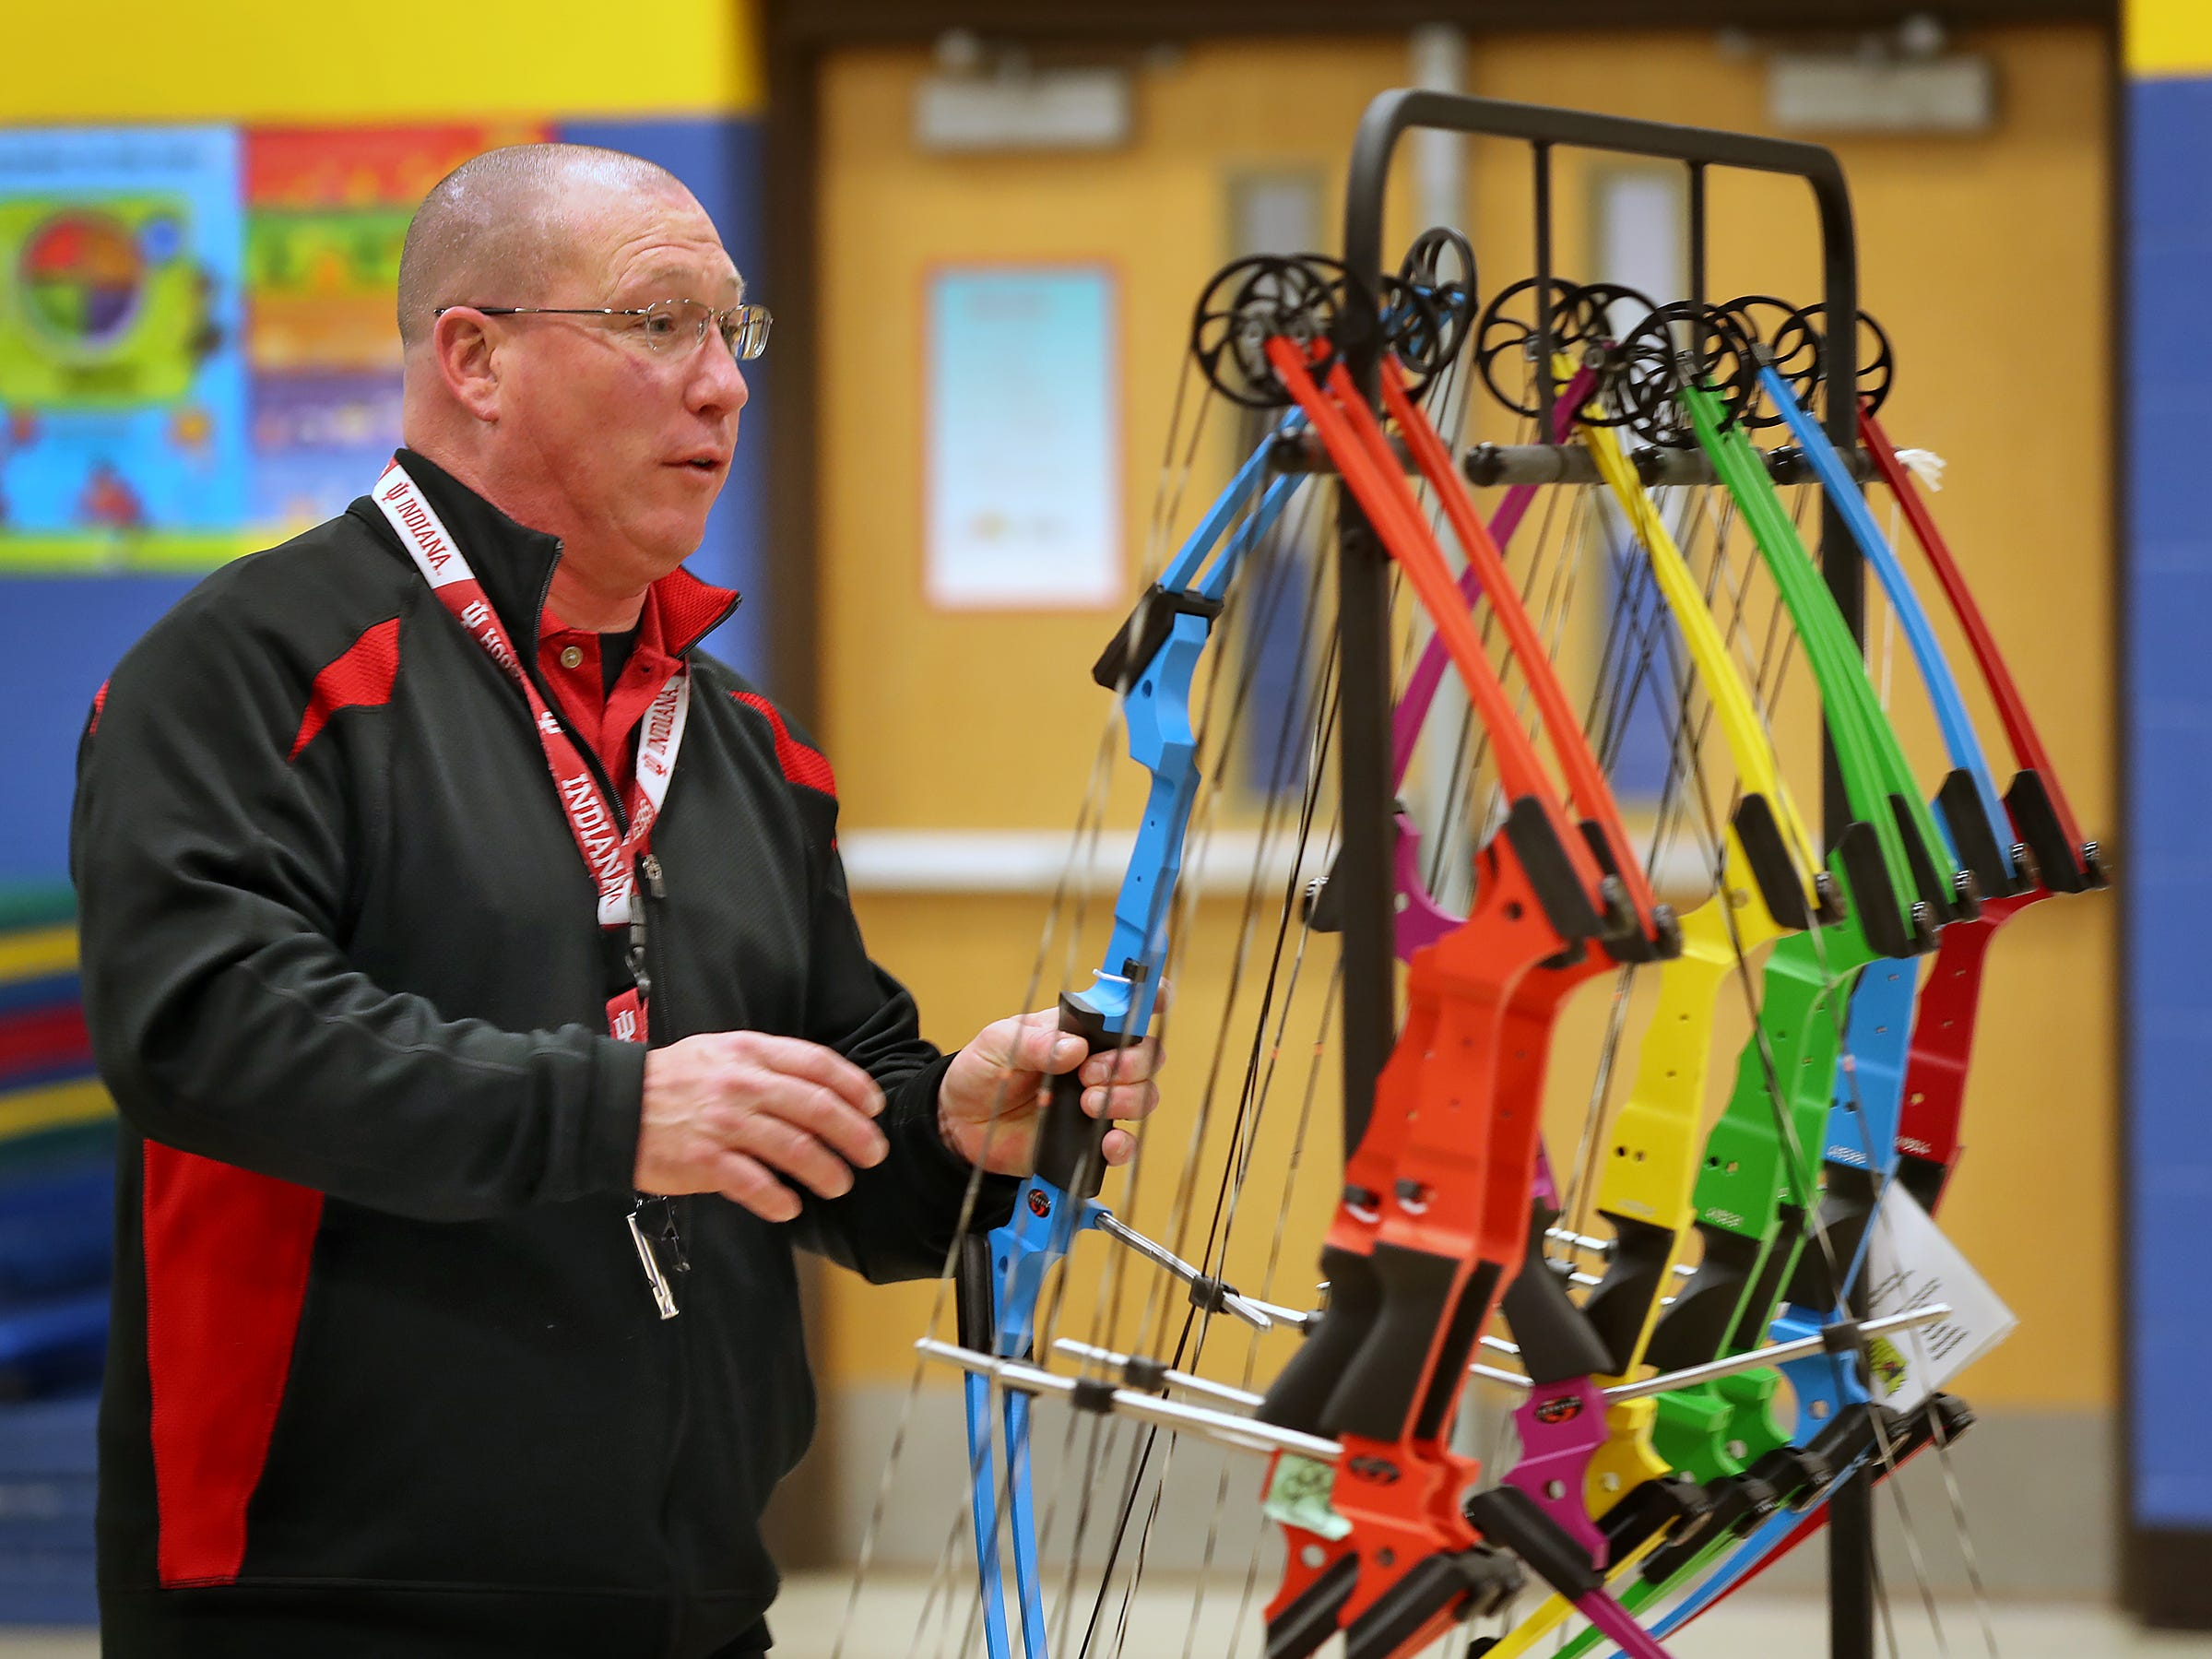 William Crawford gives safety tips to students before they shoot during archery class at Lew Wallace Elementary IPS 107, Thursday, Dec. 20, 2018.